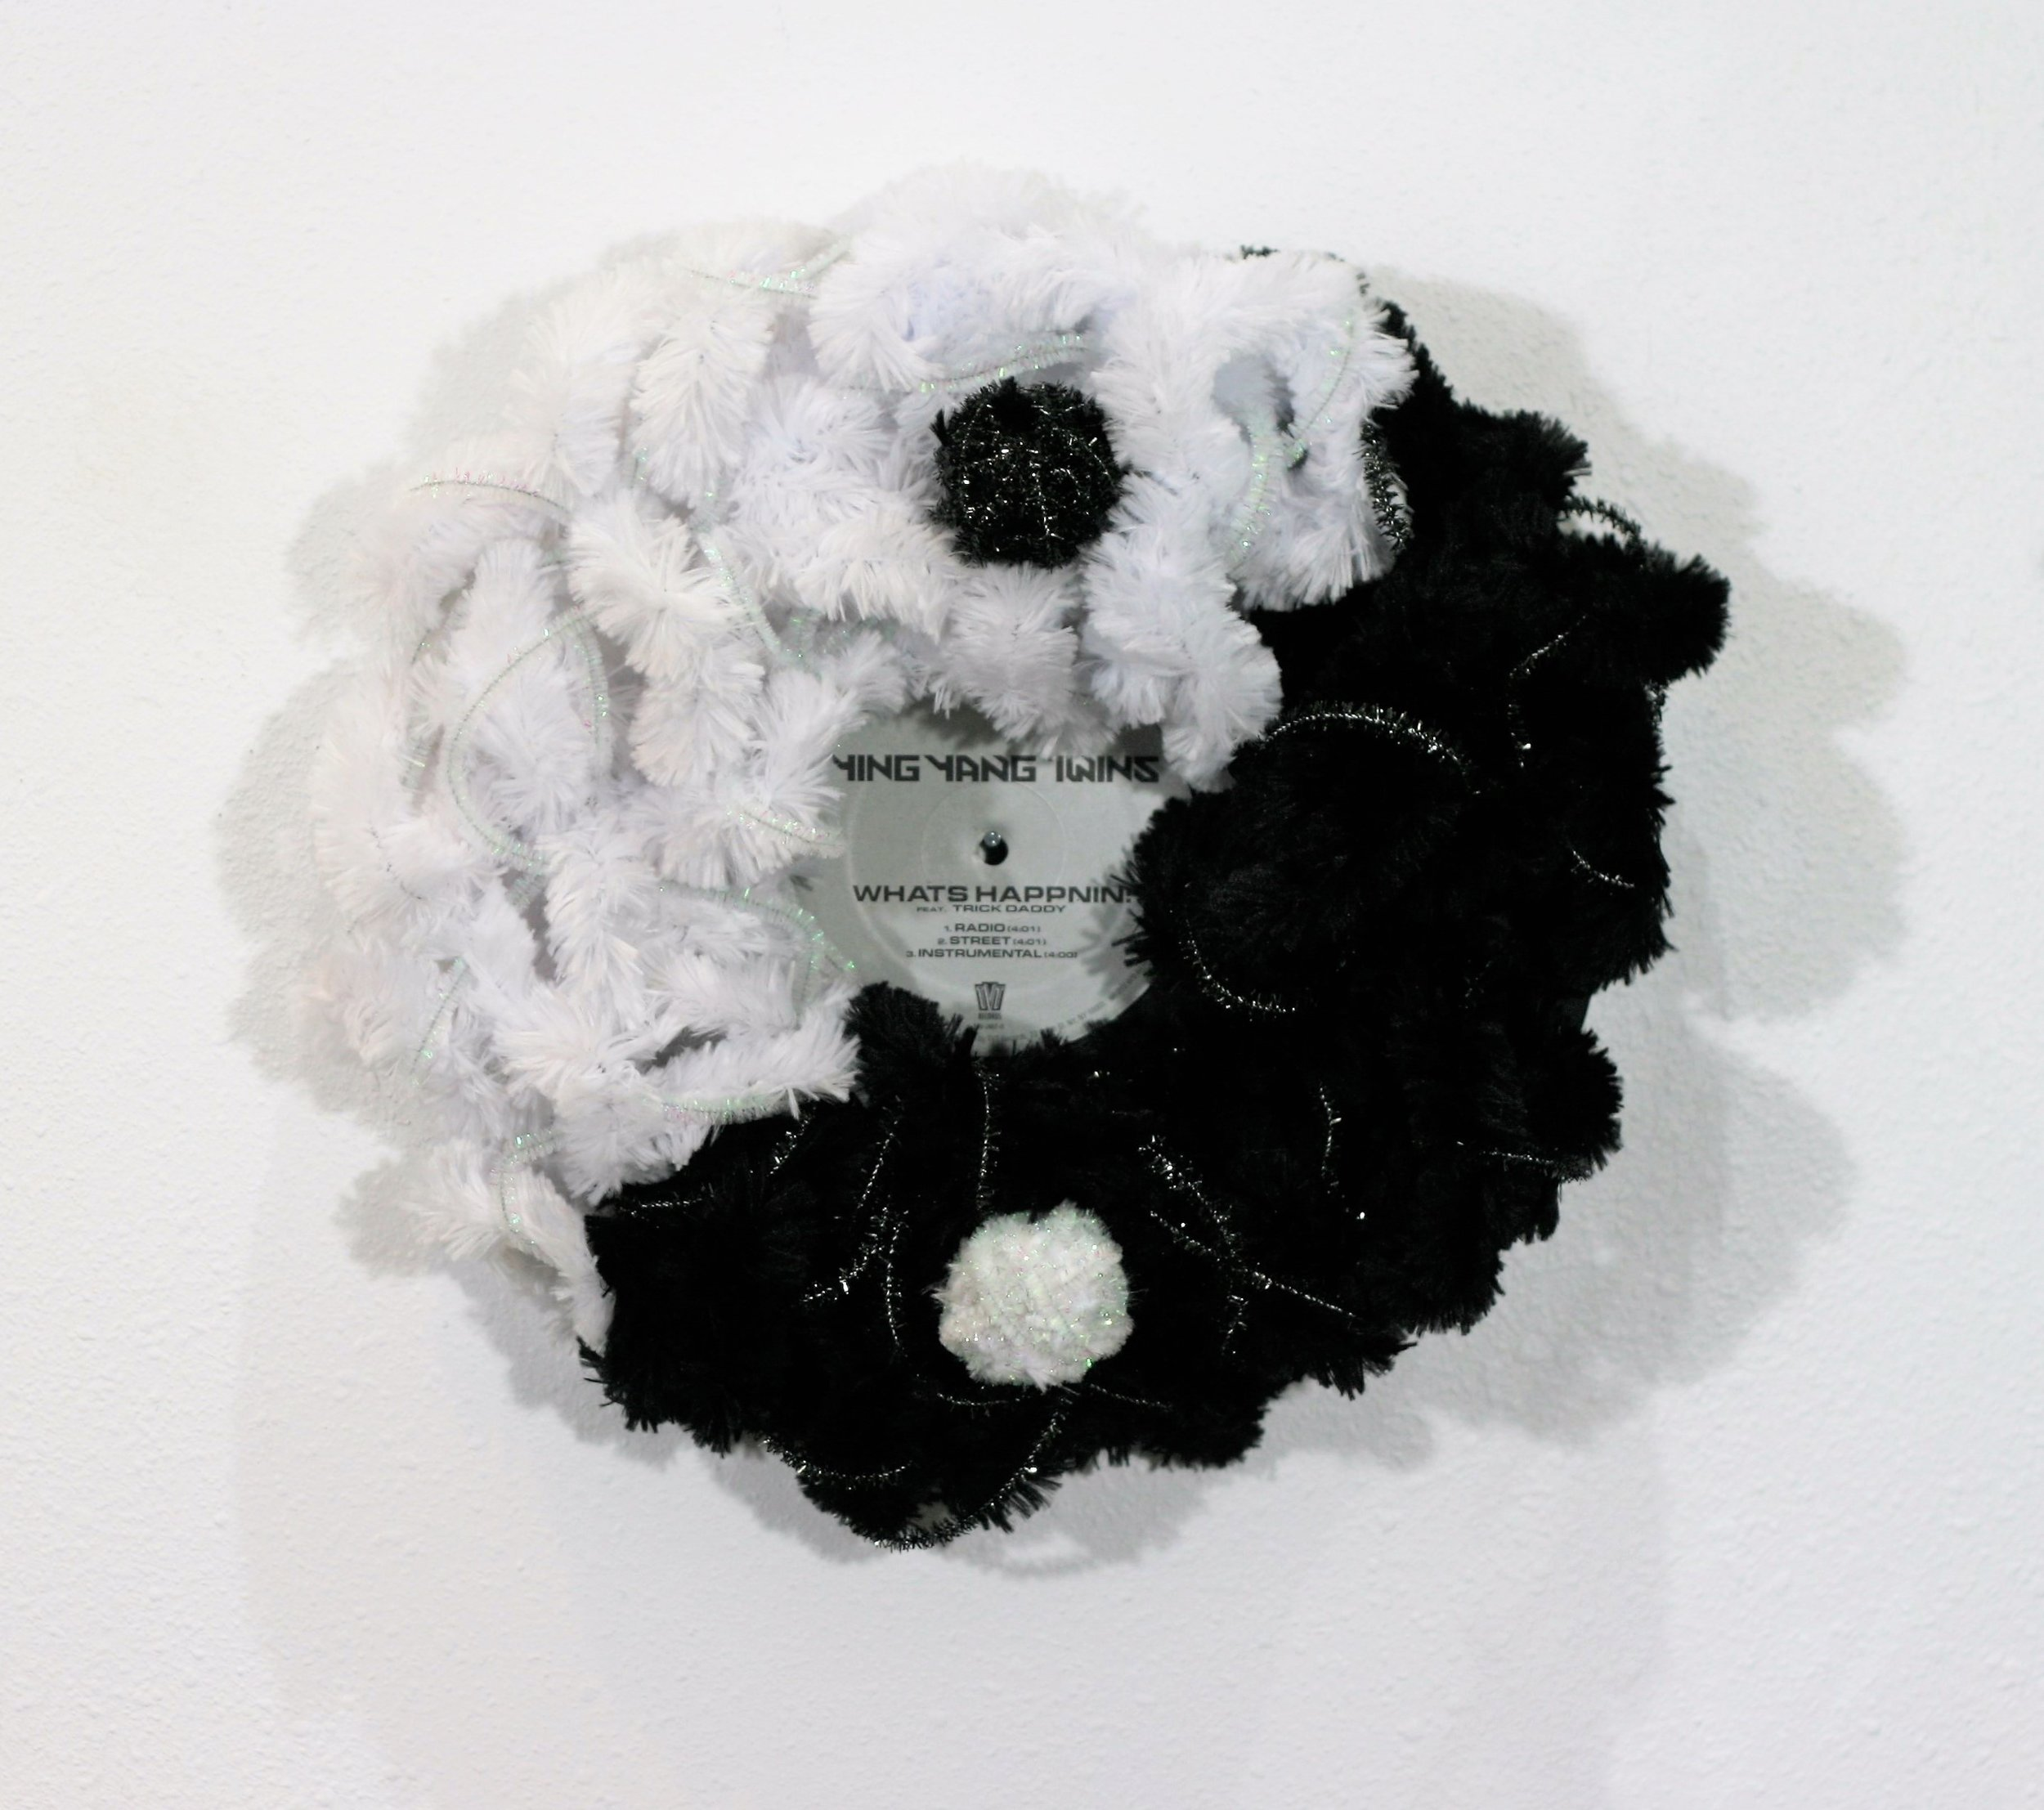 """There is no Ying - Mixed Media12"""" diameter x 3""""2019** Available for purchase. This is a fun piece! First of all, it all began when my mom and I were chatting and I had always thought that it was """"Ying and Yang"""" and she told me that it is """"Yin and Yang"""" and my response was """"Oh… there is no Ying"""". We laughed and thought that is a great title for an art piece!As we chatted about this art piece we then thought it would be clever for the base of the art piece to be a Ying Yang Twins record. As I started to research more about about Yin and Yang, I love the concept being about dualism, how opposites are interconnected in the natural world and each have a little of each other within. We are each a package. No one or no thing is one sided, we are multidimensional."""